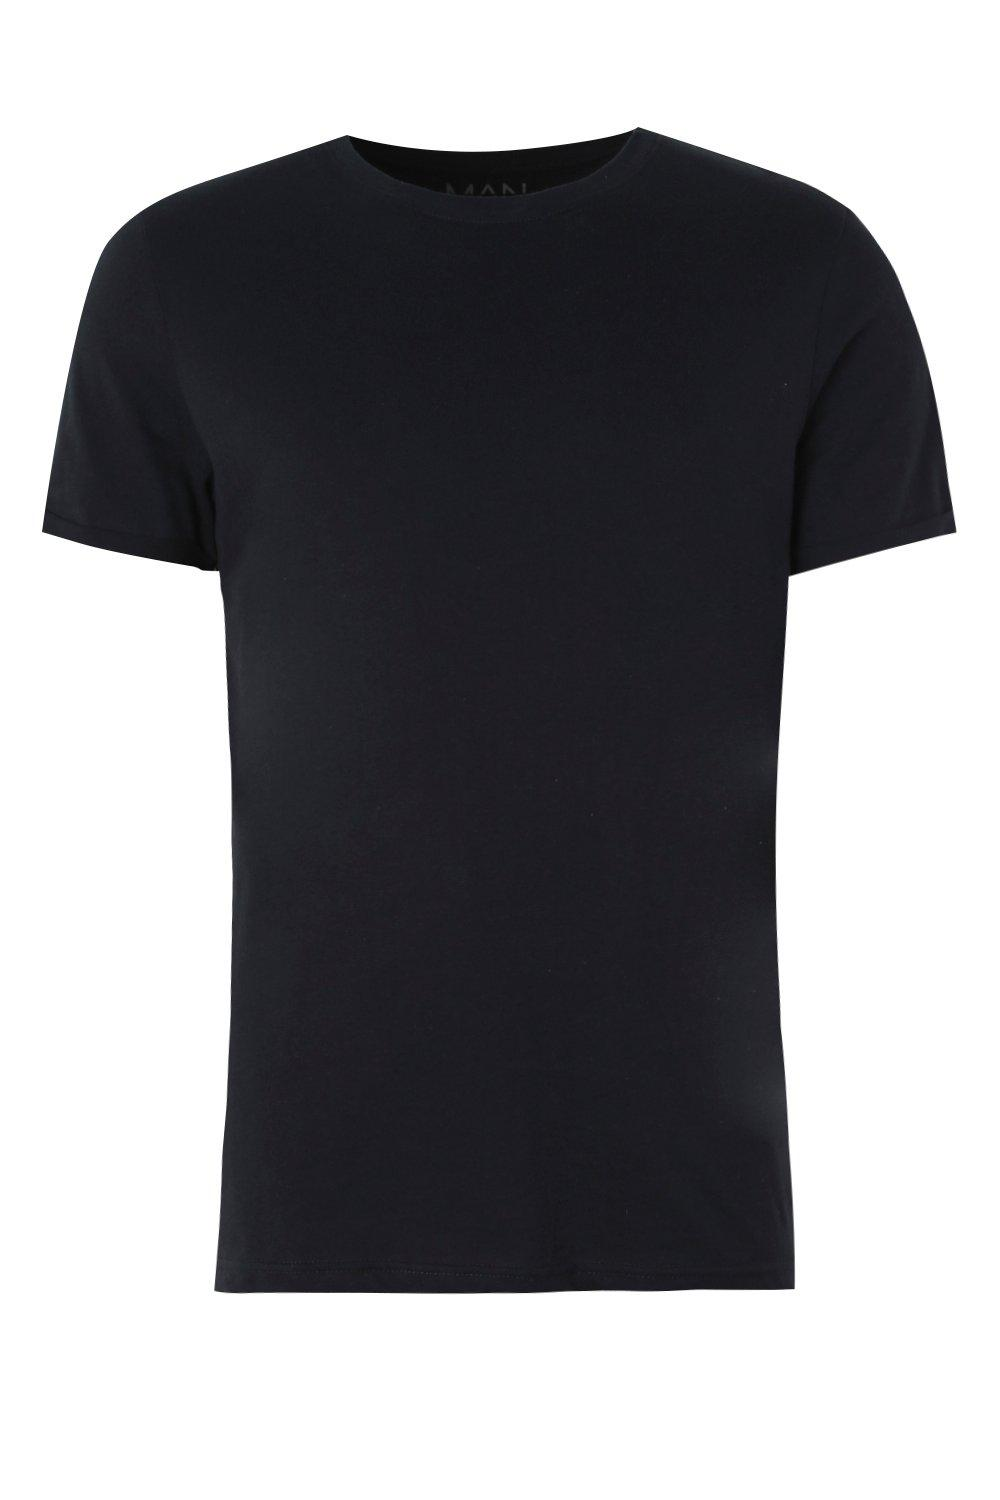 boohooMAN navy Crew Neck T-Shirt with Rolled Sleeves